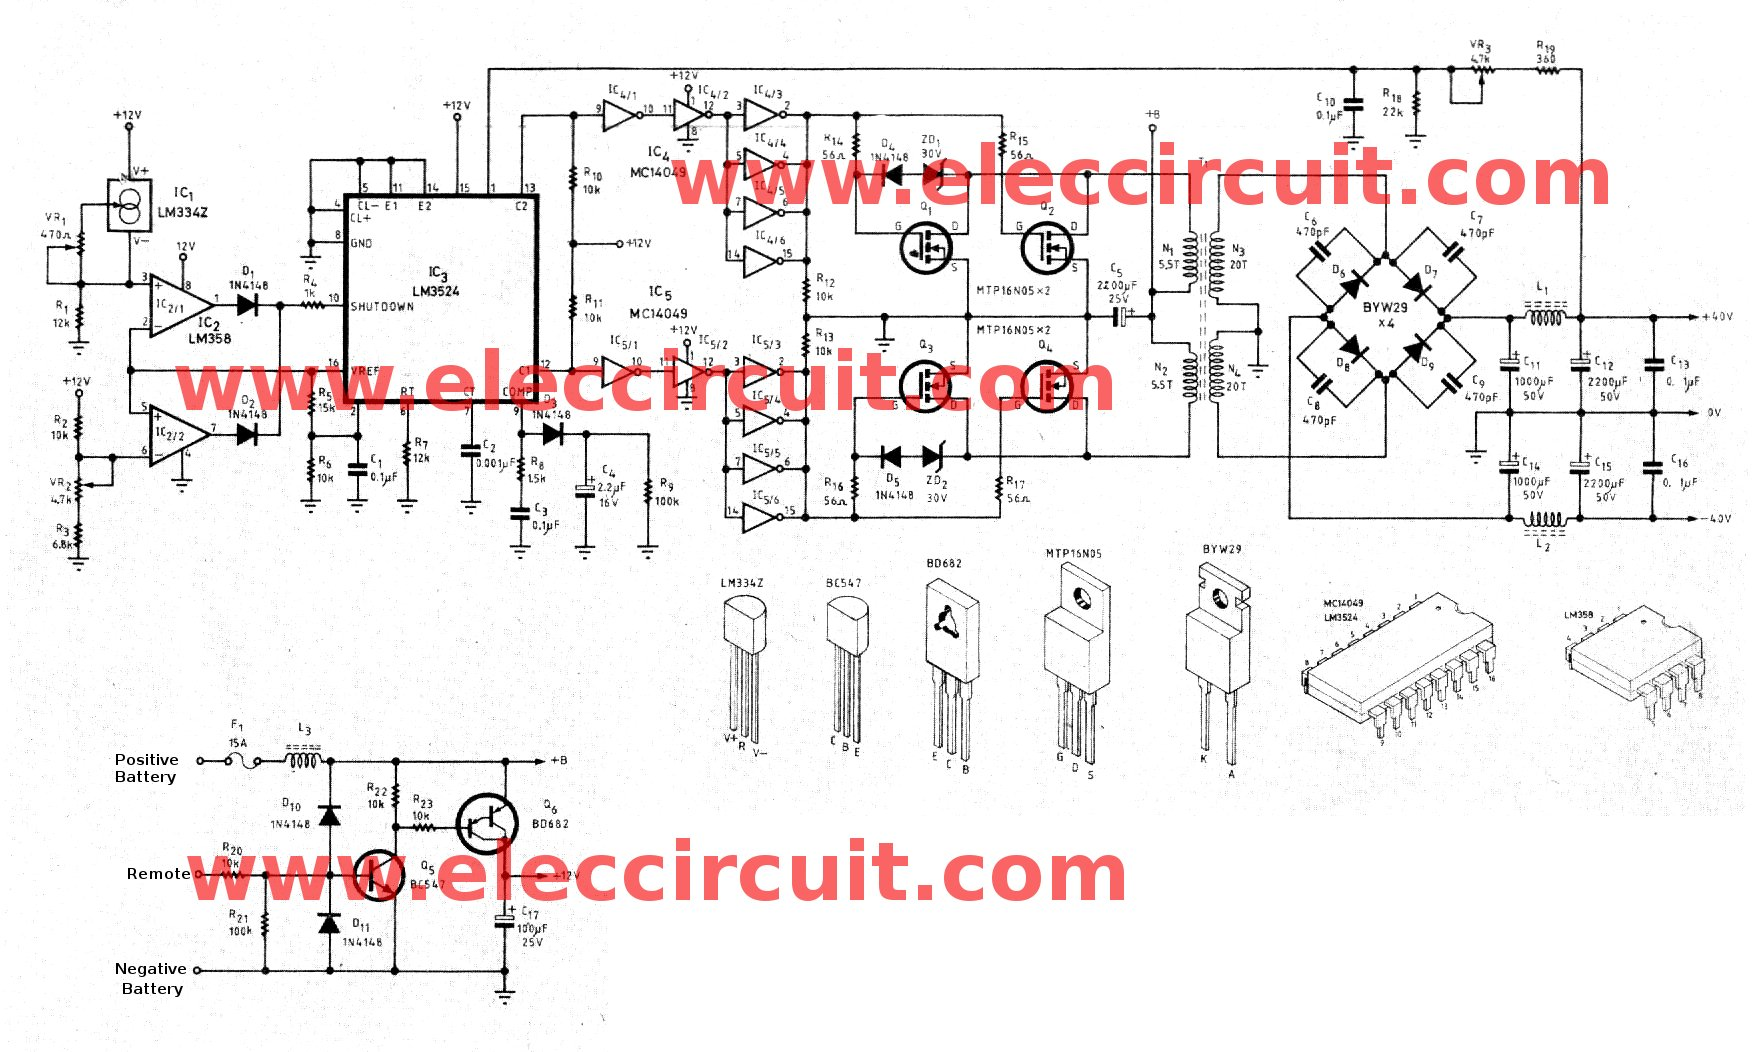 Car Alternator Wiring Diagram Delco Gm 2 Wire To 4 10si Cs130 On 2 as well Rg diag tele further Leviton 6683 Iw 600w further 12vdc To 37v Dc Converter By Sg3524 also Wiring A 3 Way Switch. on 2 way switch wiring diagram